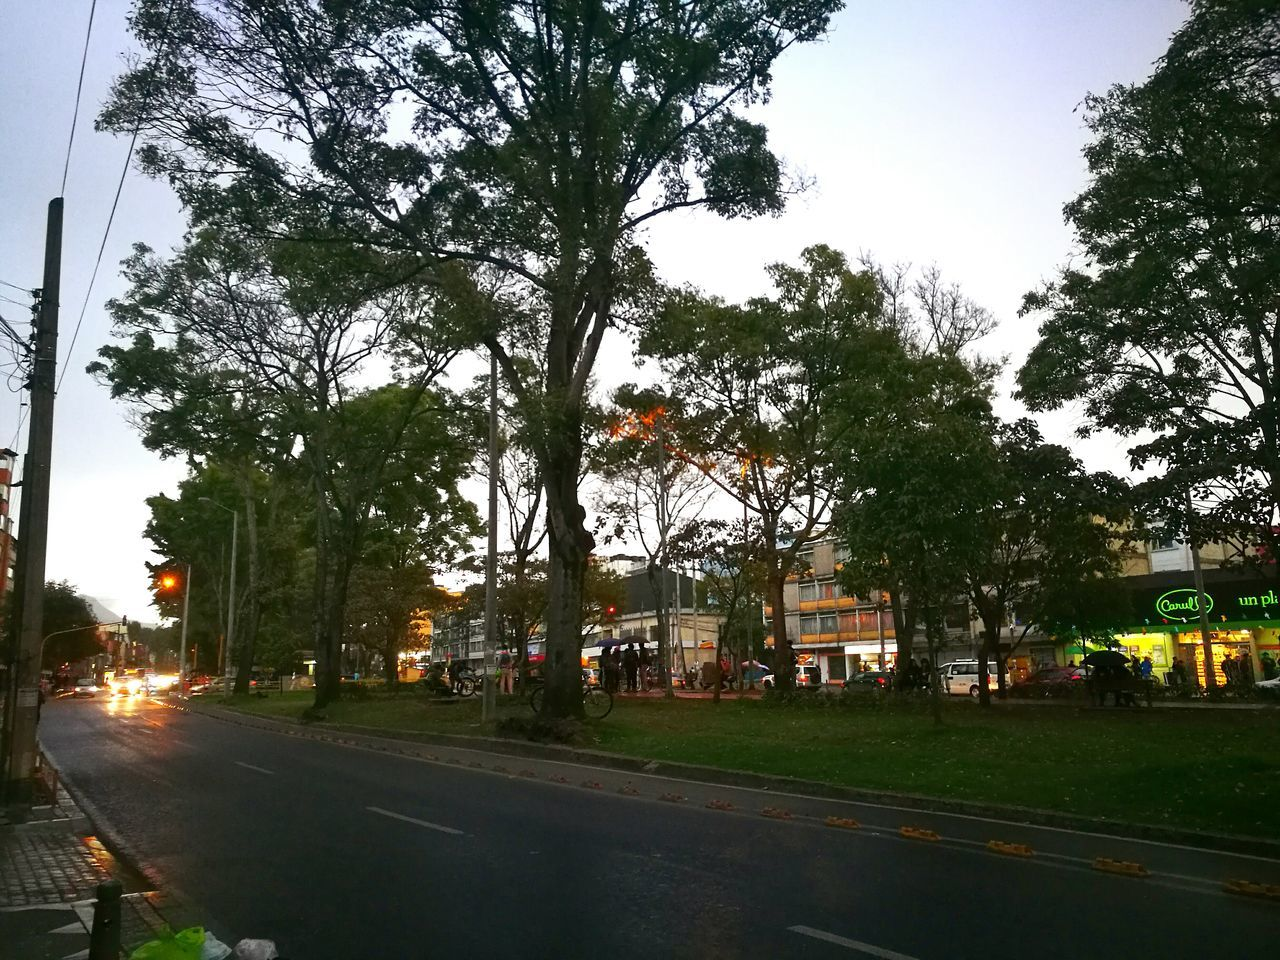 tree, car, road, transportation, outdoors, sky, built structure, growth, land vehicle, building exterior, no people, day, nature, architecture, city, grass, illuminated